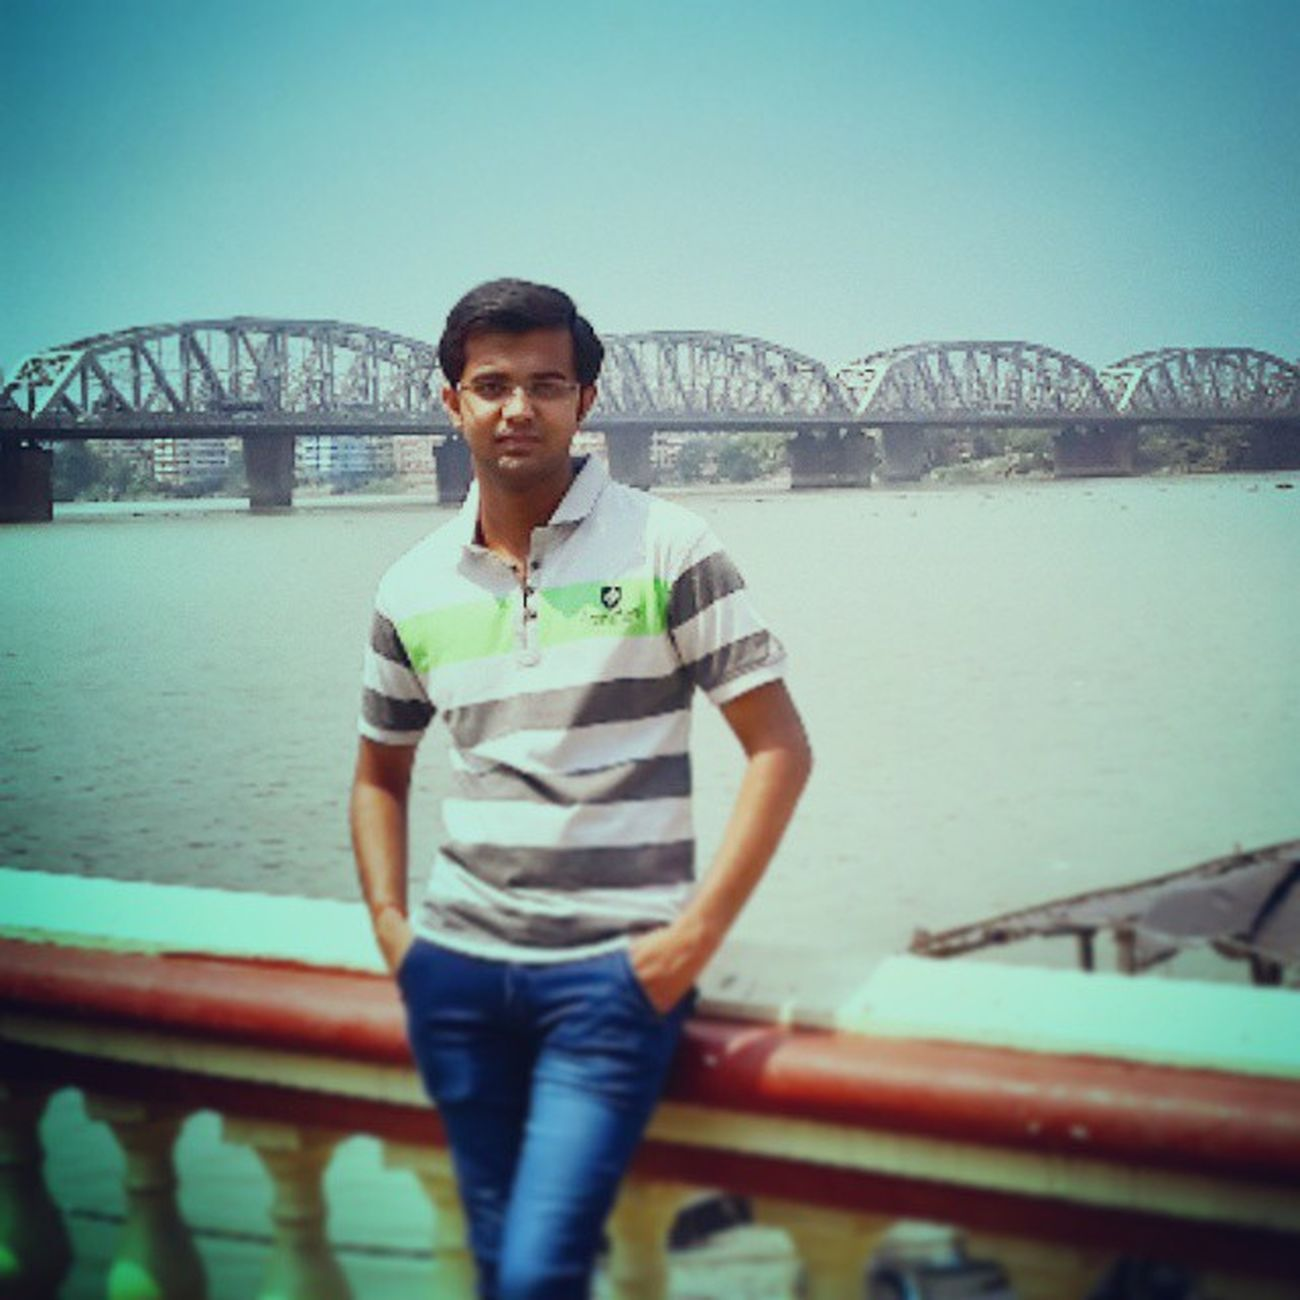 Photosession Warmday Birthday Blessings Dakshineshwar Awesome Background Ballybridge Kolkata India Instaclick Instaediting Instaeffect Instaupload Picoftheday Tagforlike Likeforlike Followforfollow